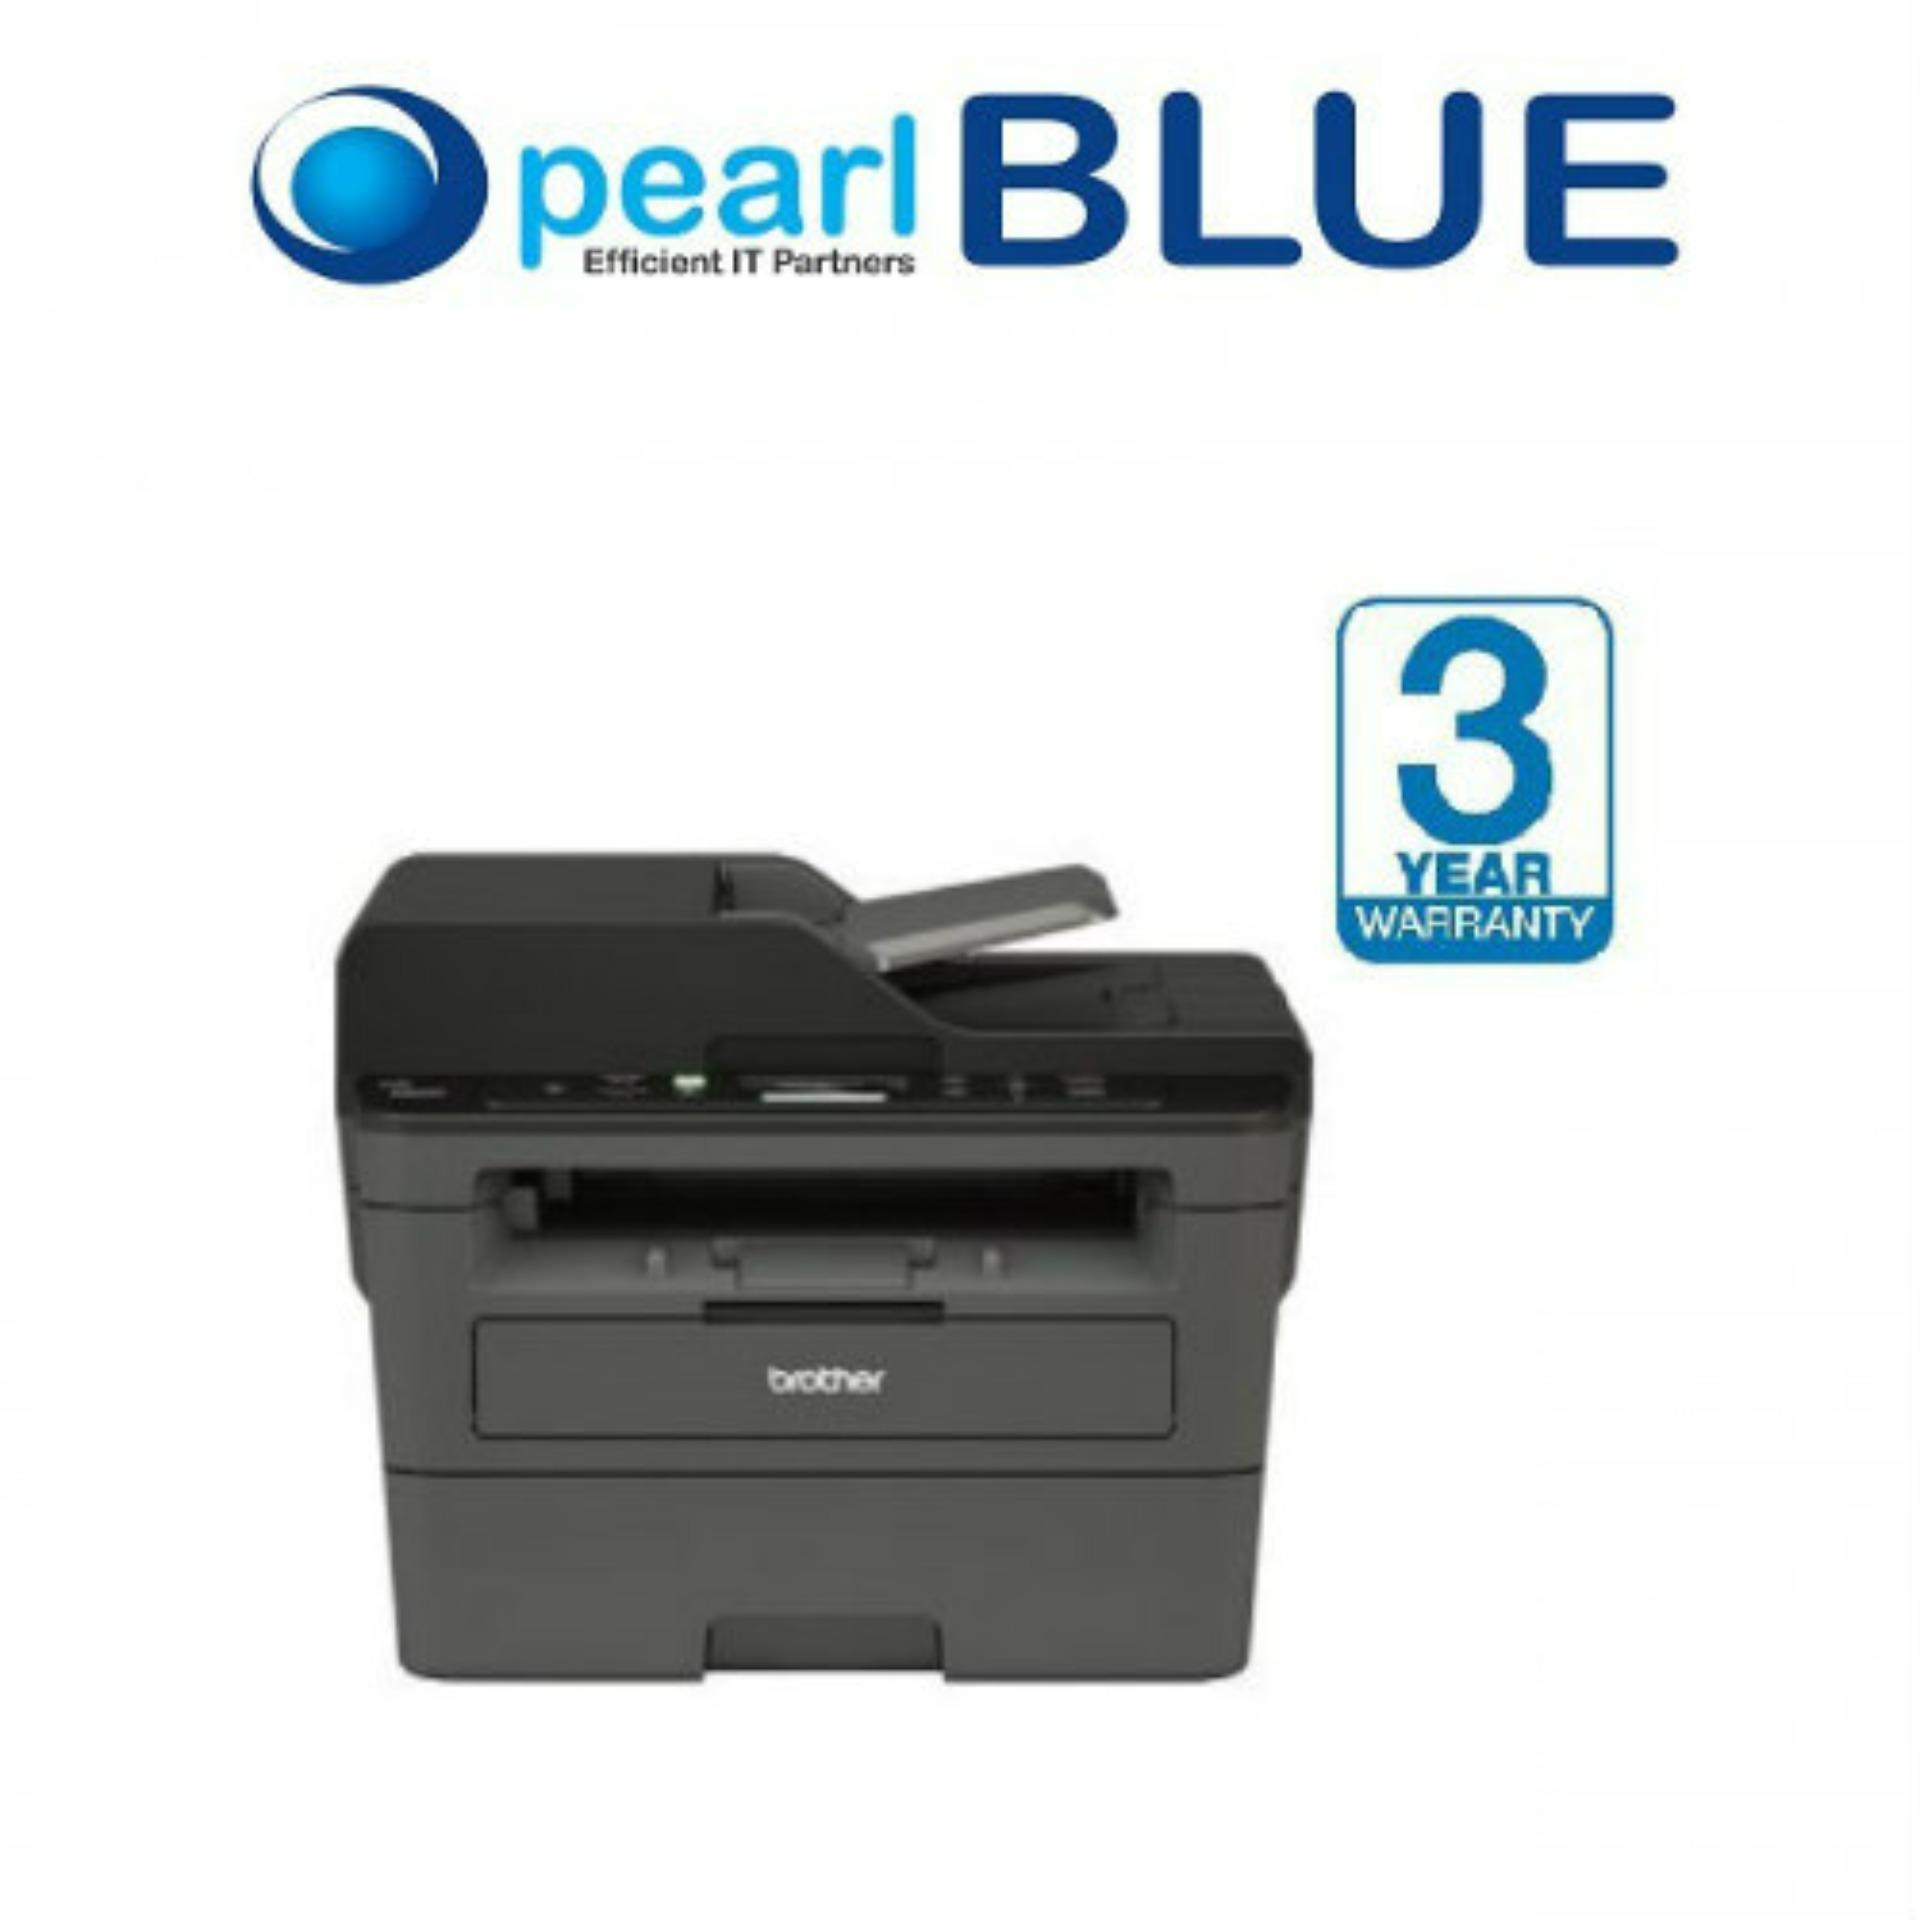 Brother Dcp-L2550dw Laser Multi-Function Printer By Pearlblue Tech.